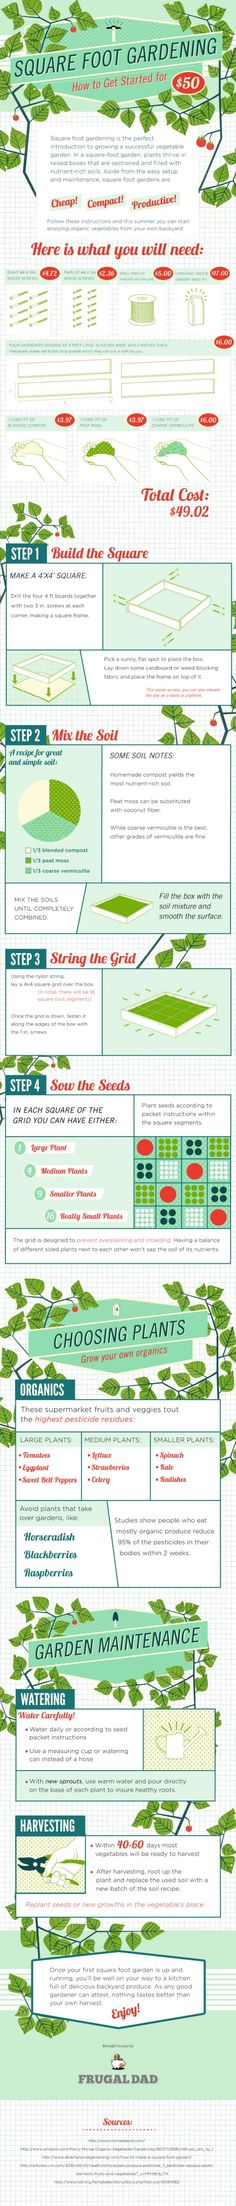 Square foot garden: installing a square foot garden is incredibly easy, easy to care for, and it produces a lot of food!